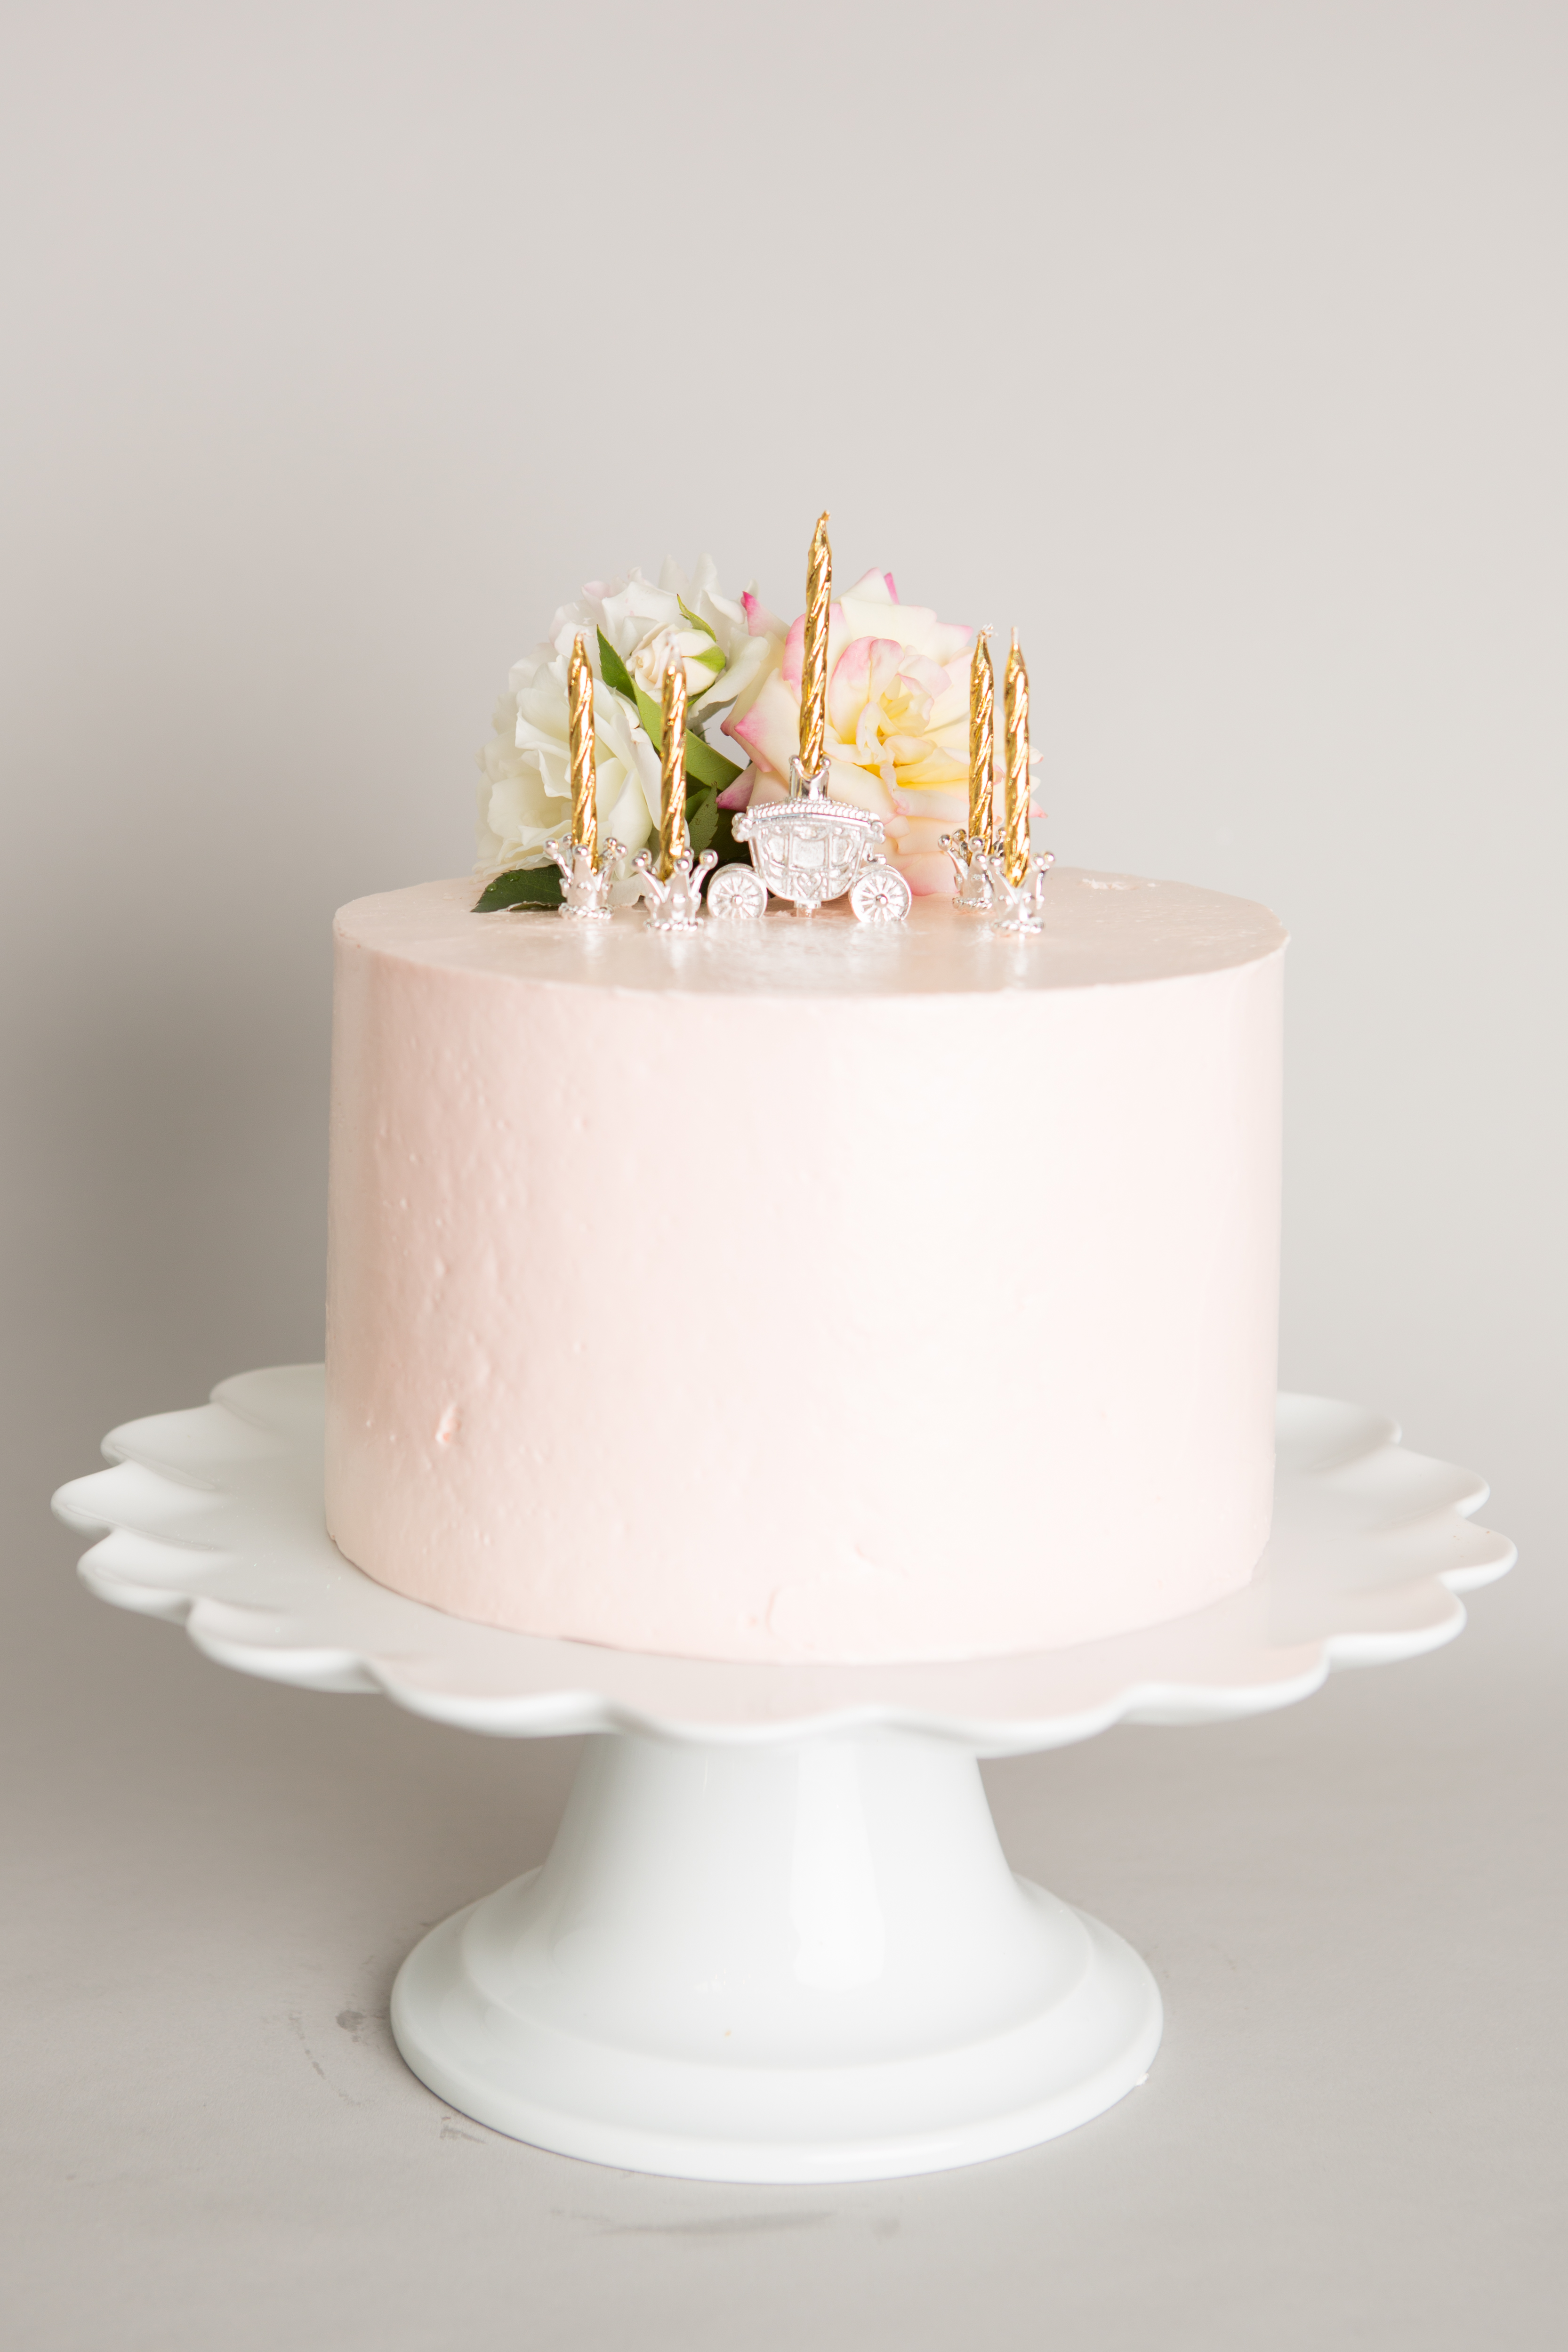 5 Silver Plated Princess Cake Candleholders